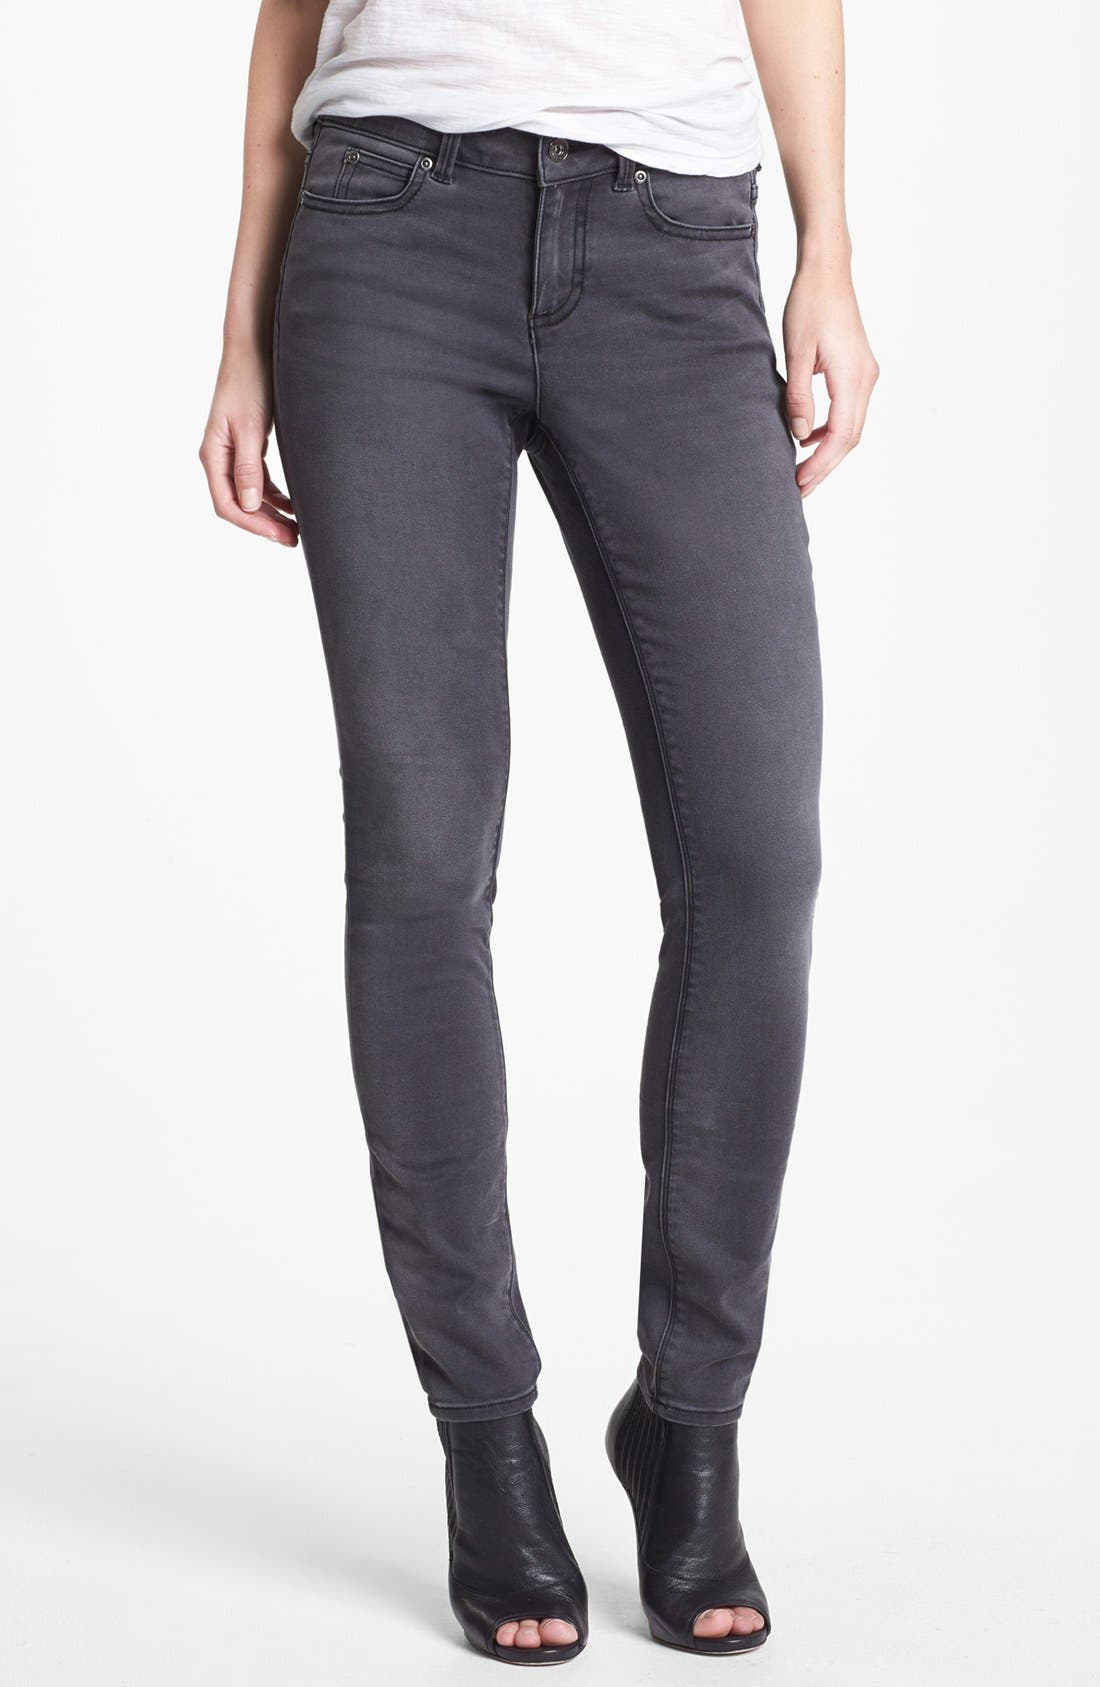 Alternate Image 1 Selected - Two by Vince Camuto 'Stone' Stretch Skinny Jeans (Dark Stone)